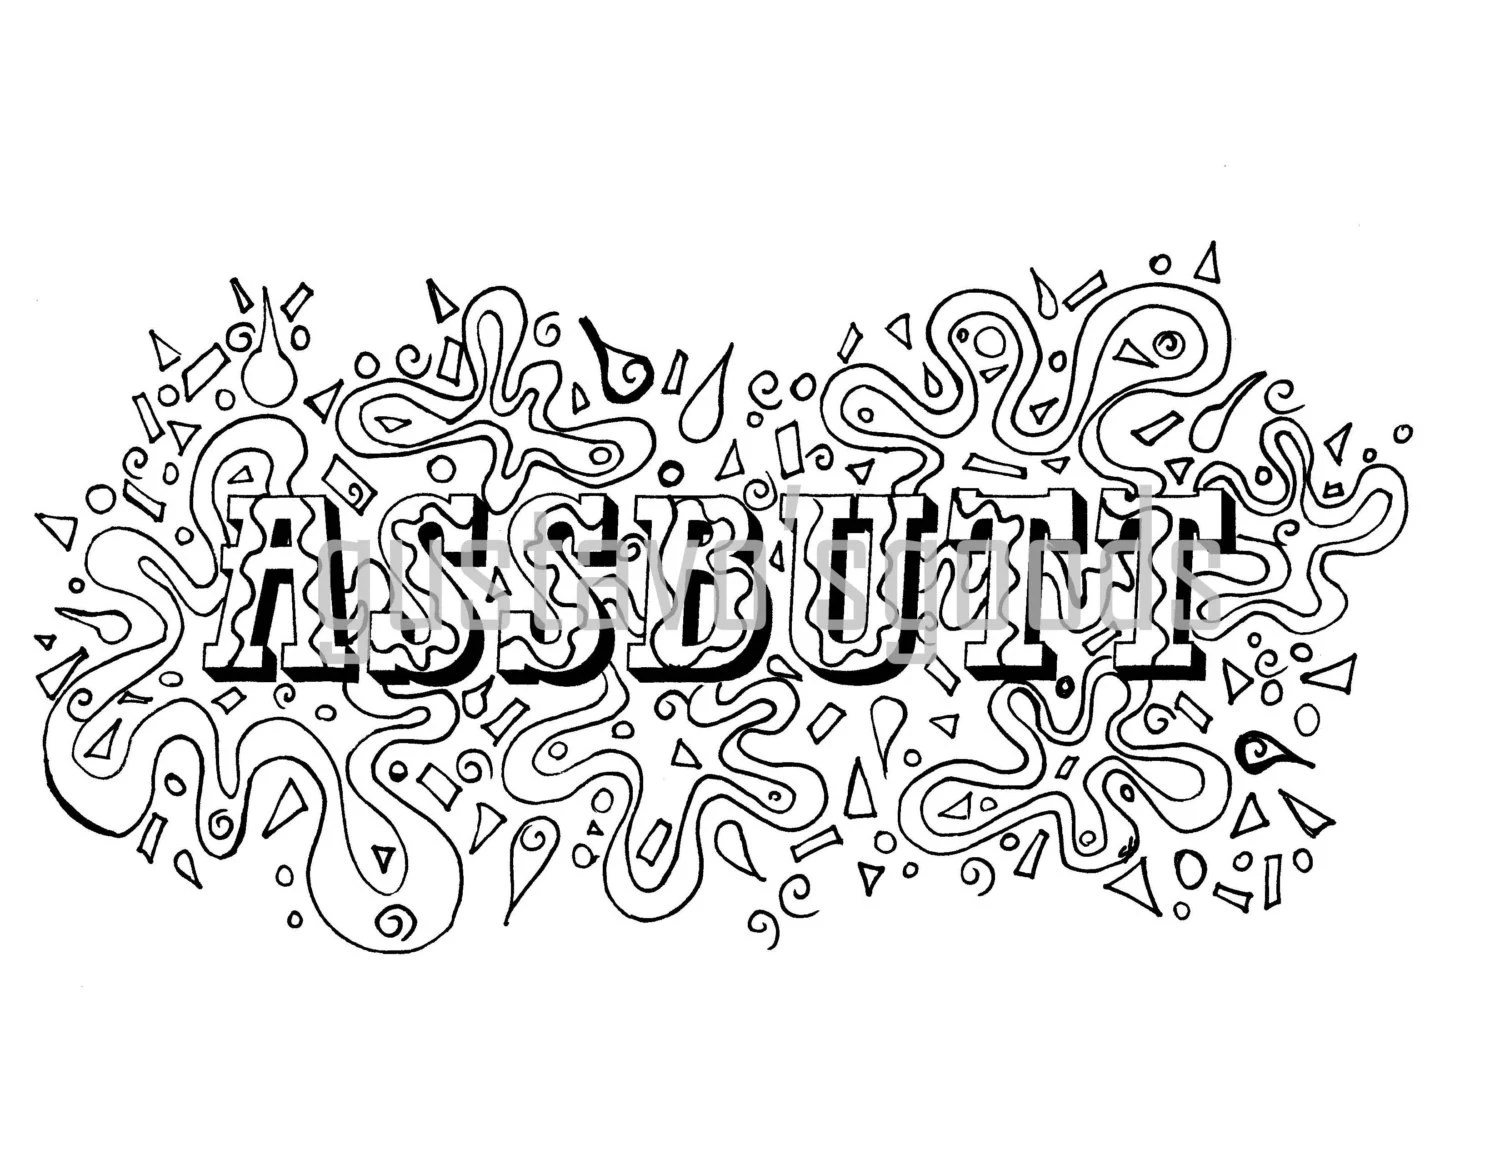 Curss Words With Coloring Pages For Adults. Curss. Best